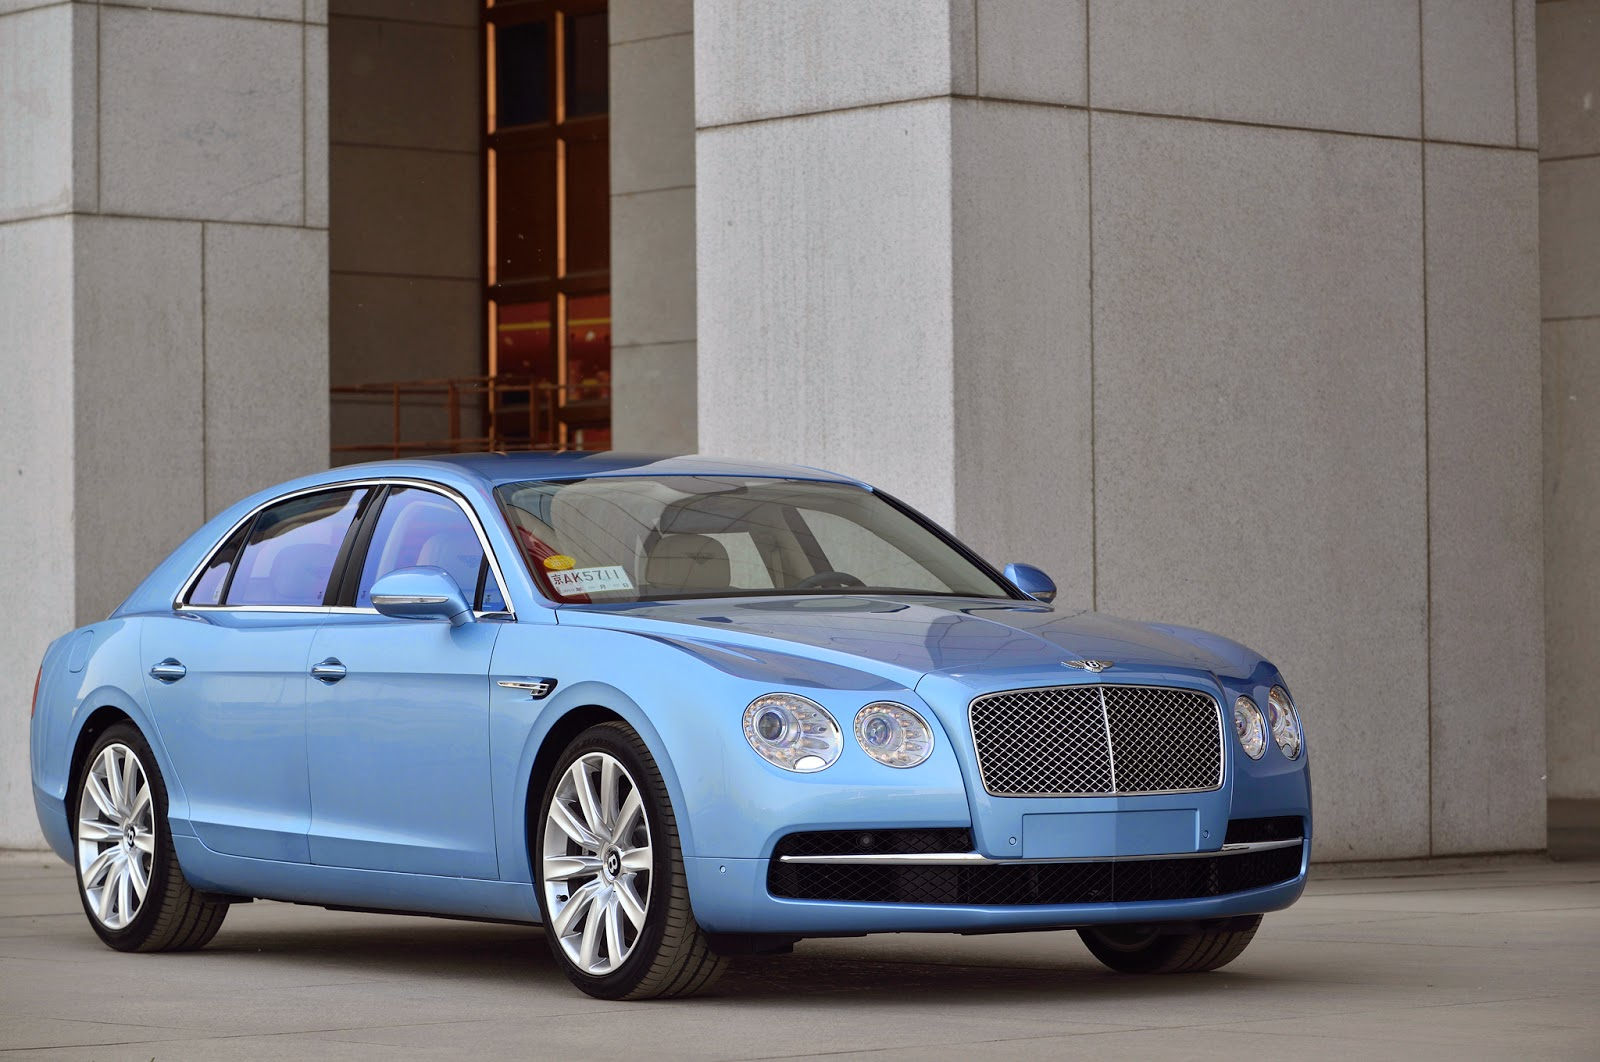 Bentley Flying Spur V8 Front View Image